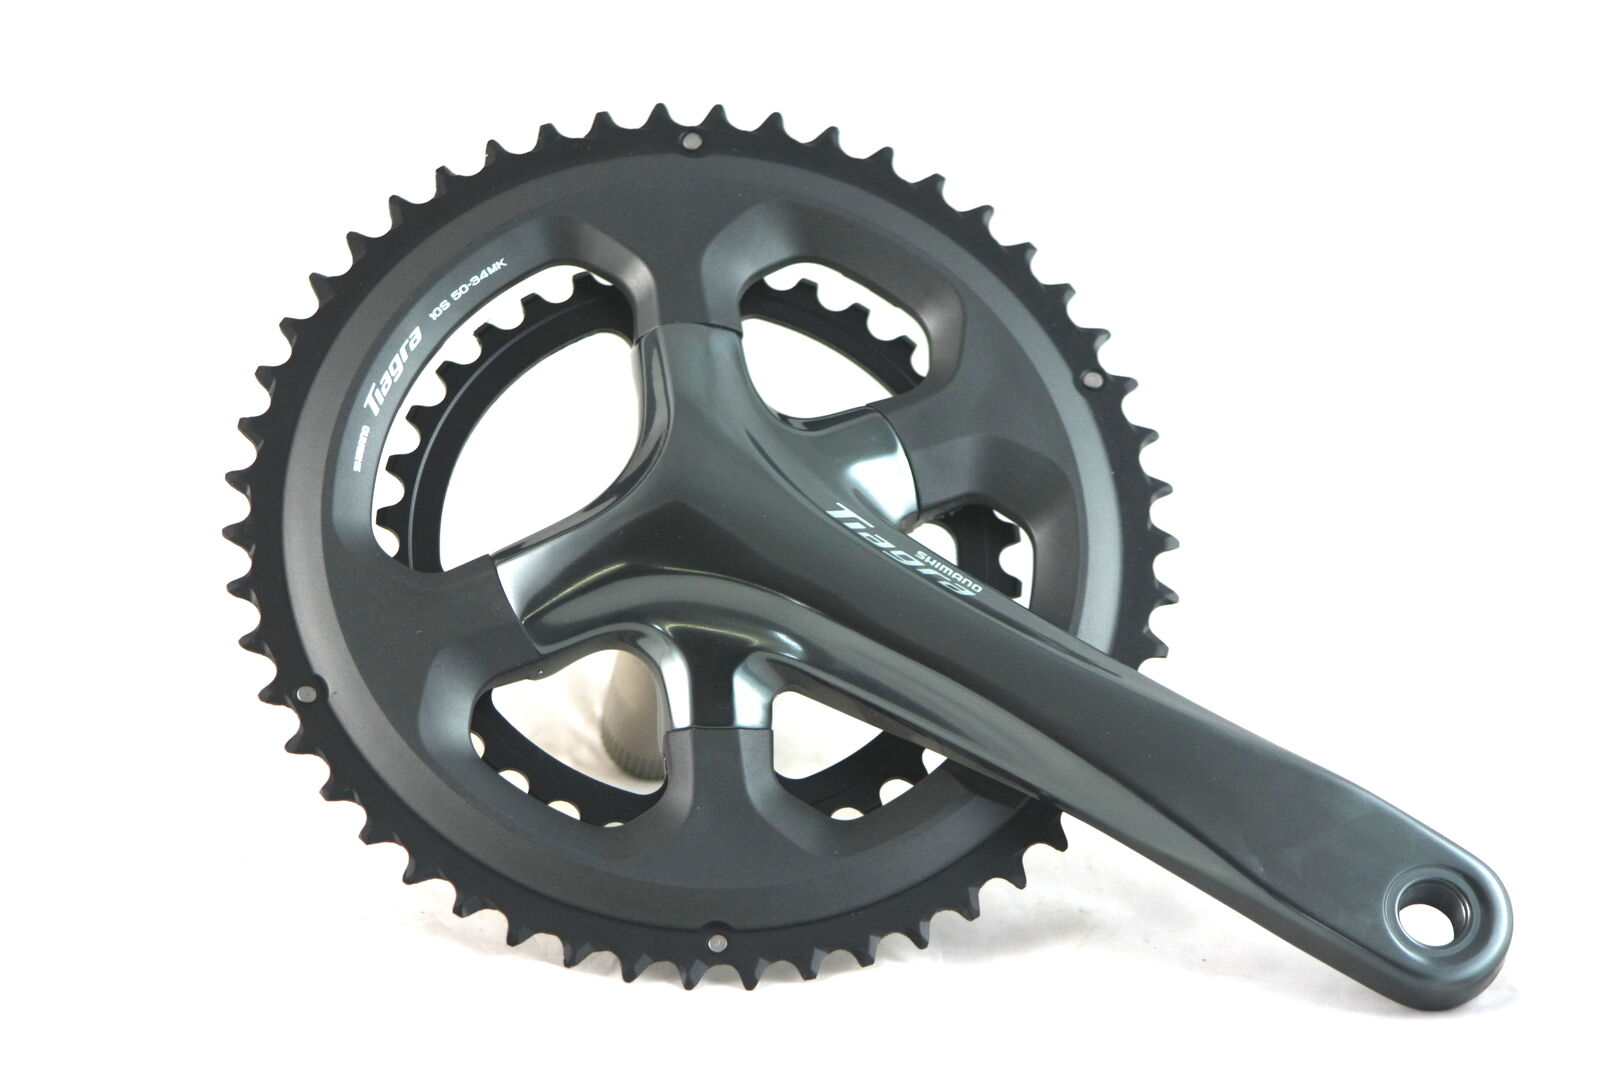 Crank Shimano Tiagra fc-4700 Hollowtech II 2f -  10f. 50-34 175mm  to provide you with a pleasant online shopping